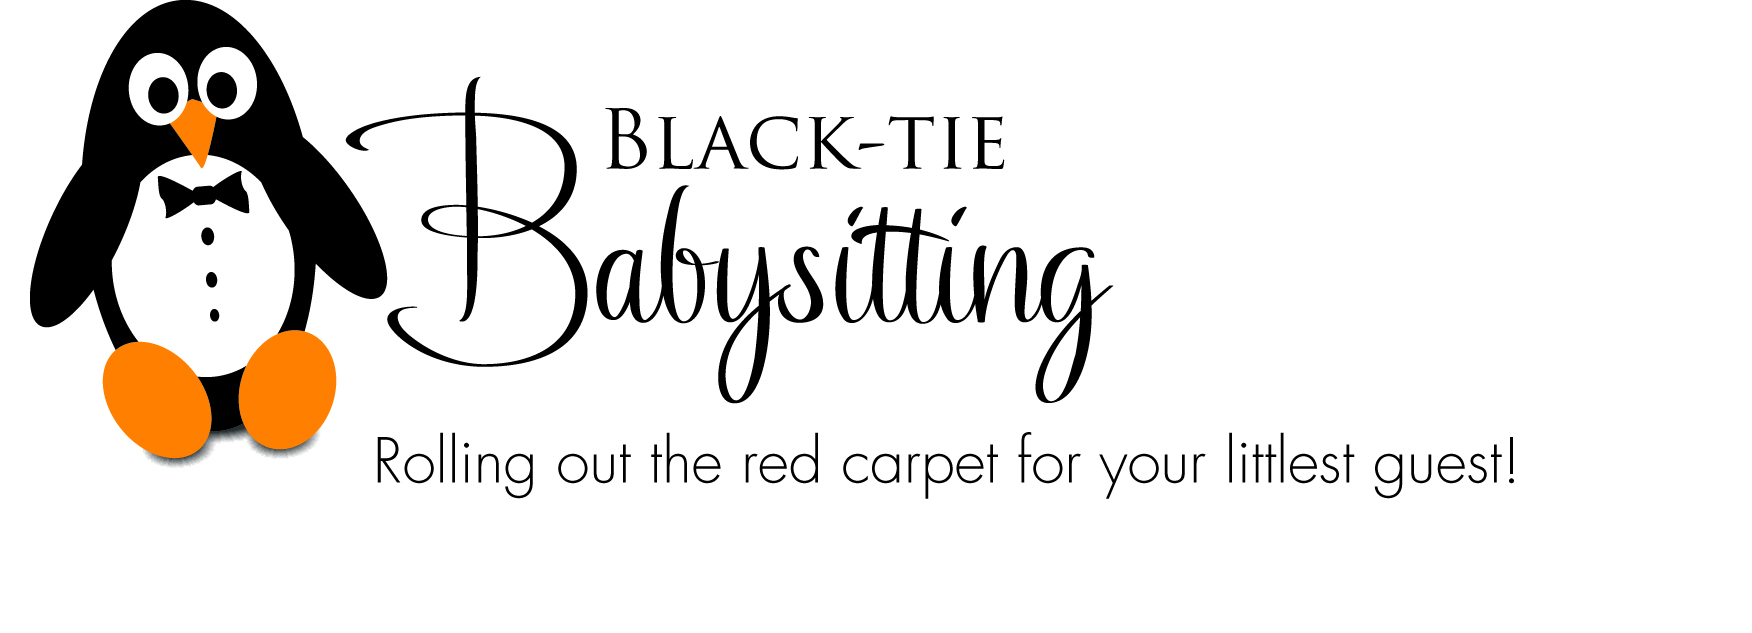 Black Tie Babysitting Jobs With Remote Part Time Or